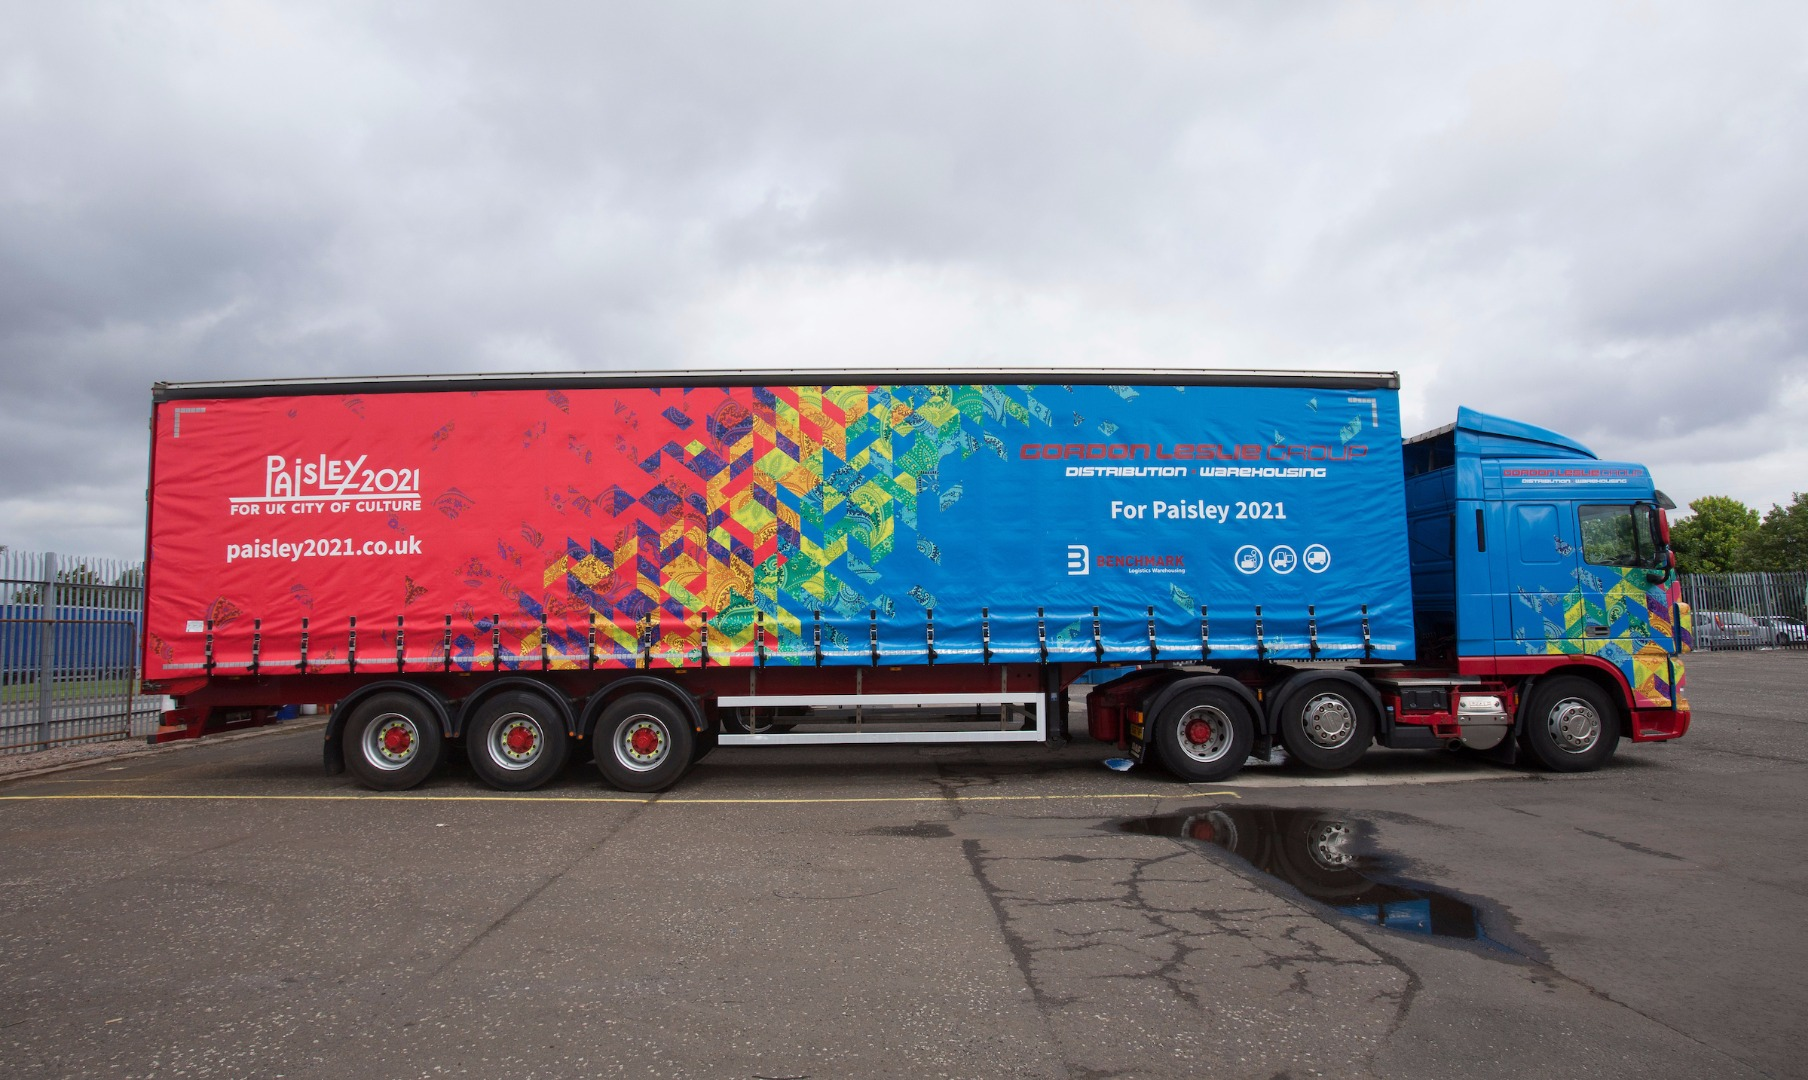 Haulage firm flying the flag for Paisley 2021 with special truck